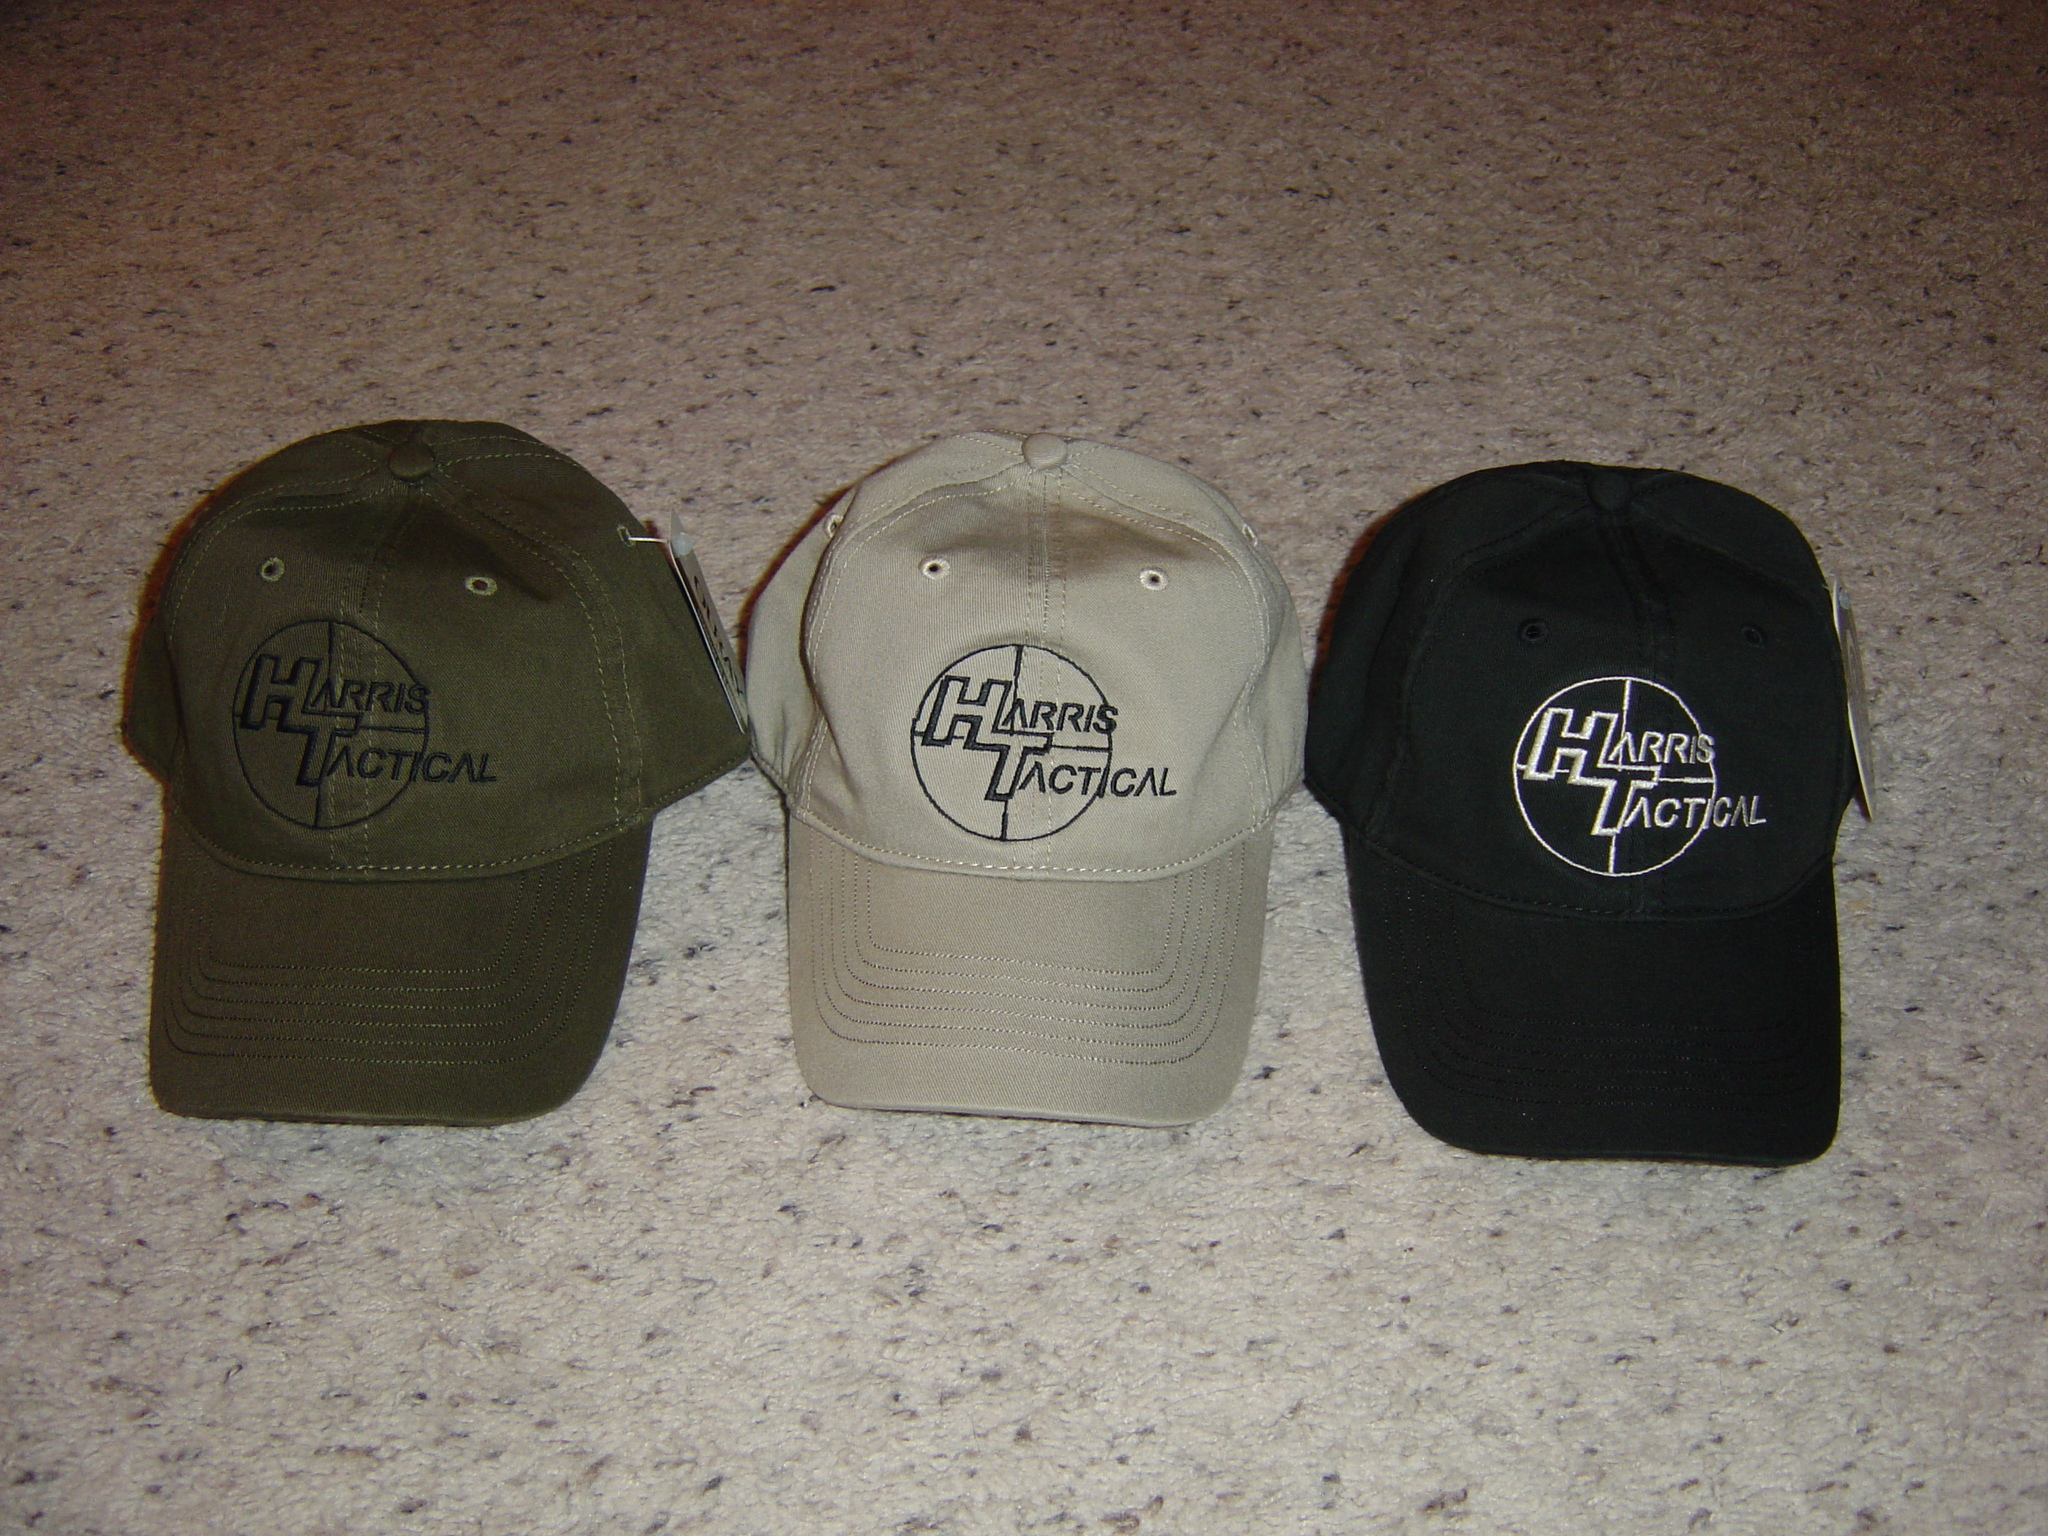 Harris Tactical Hats